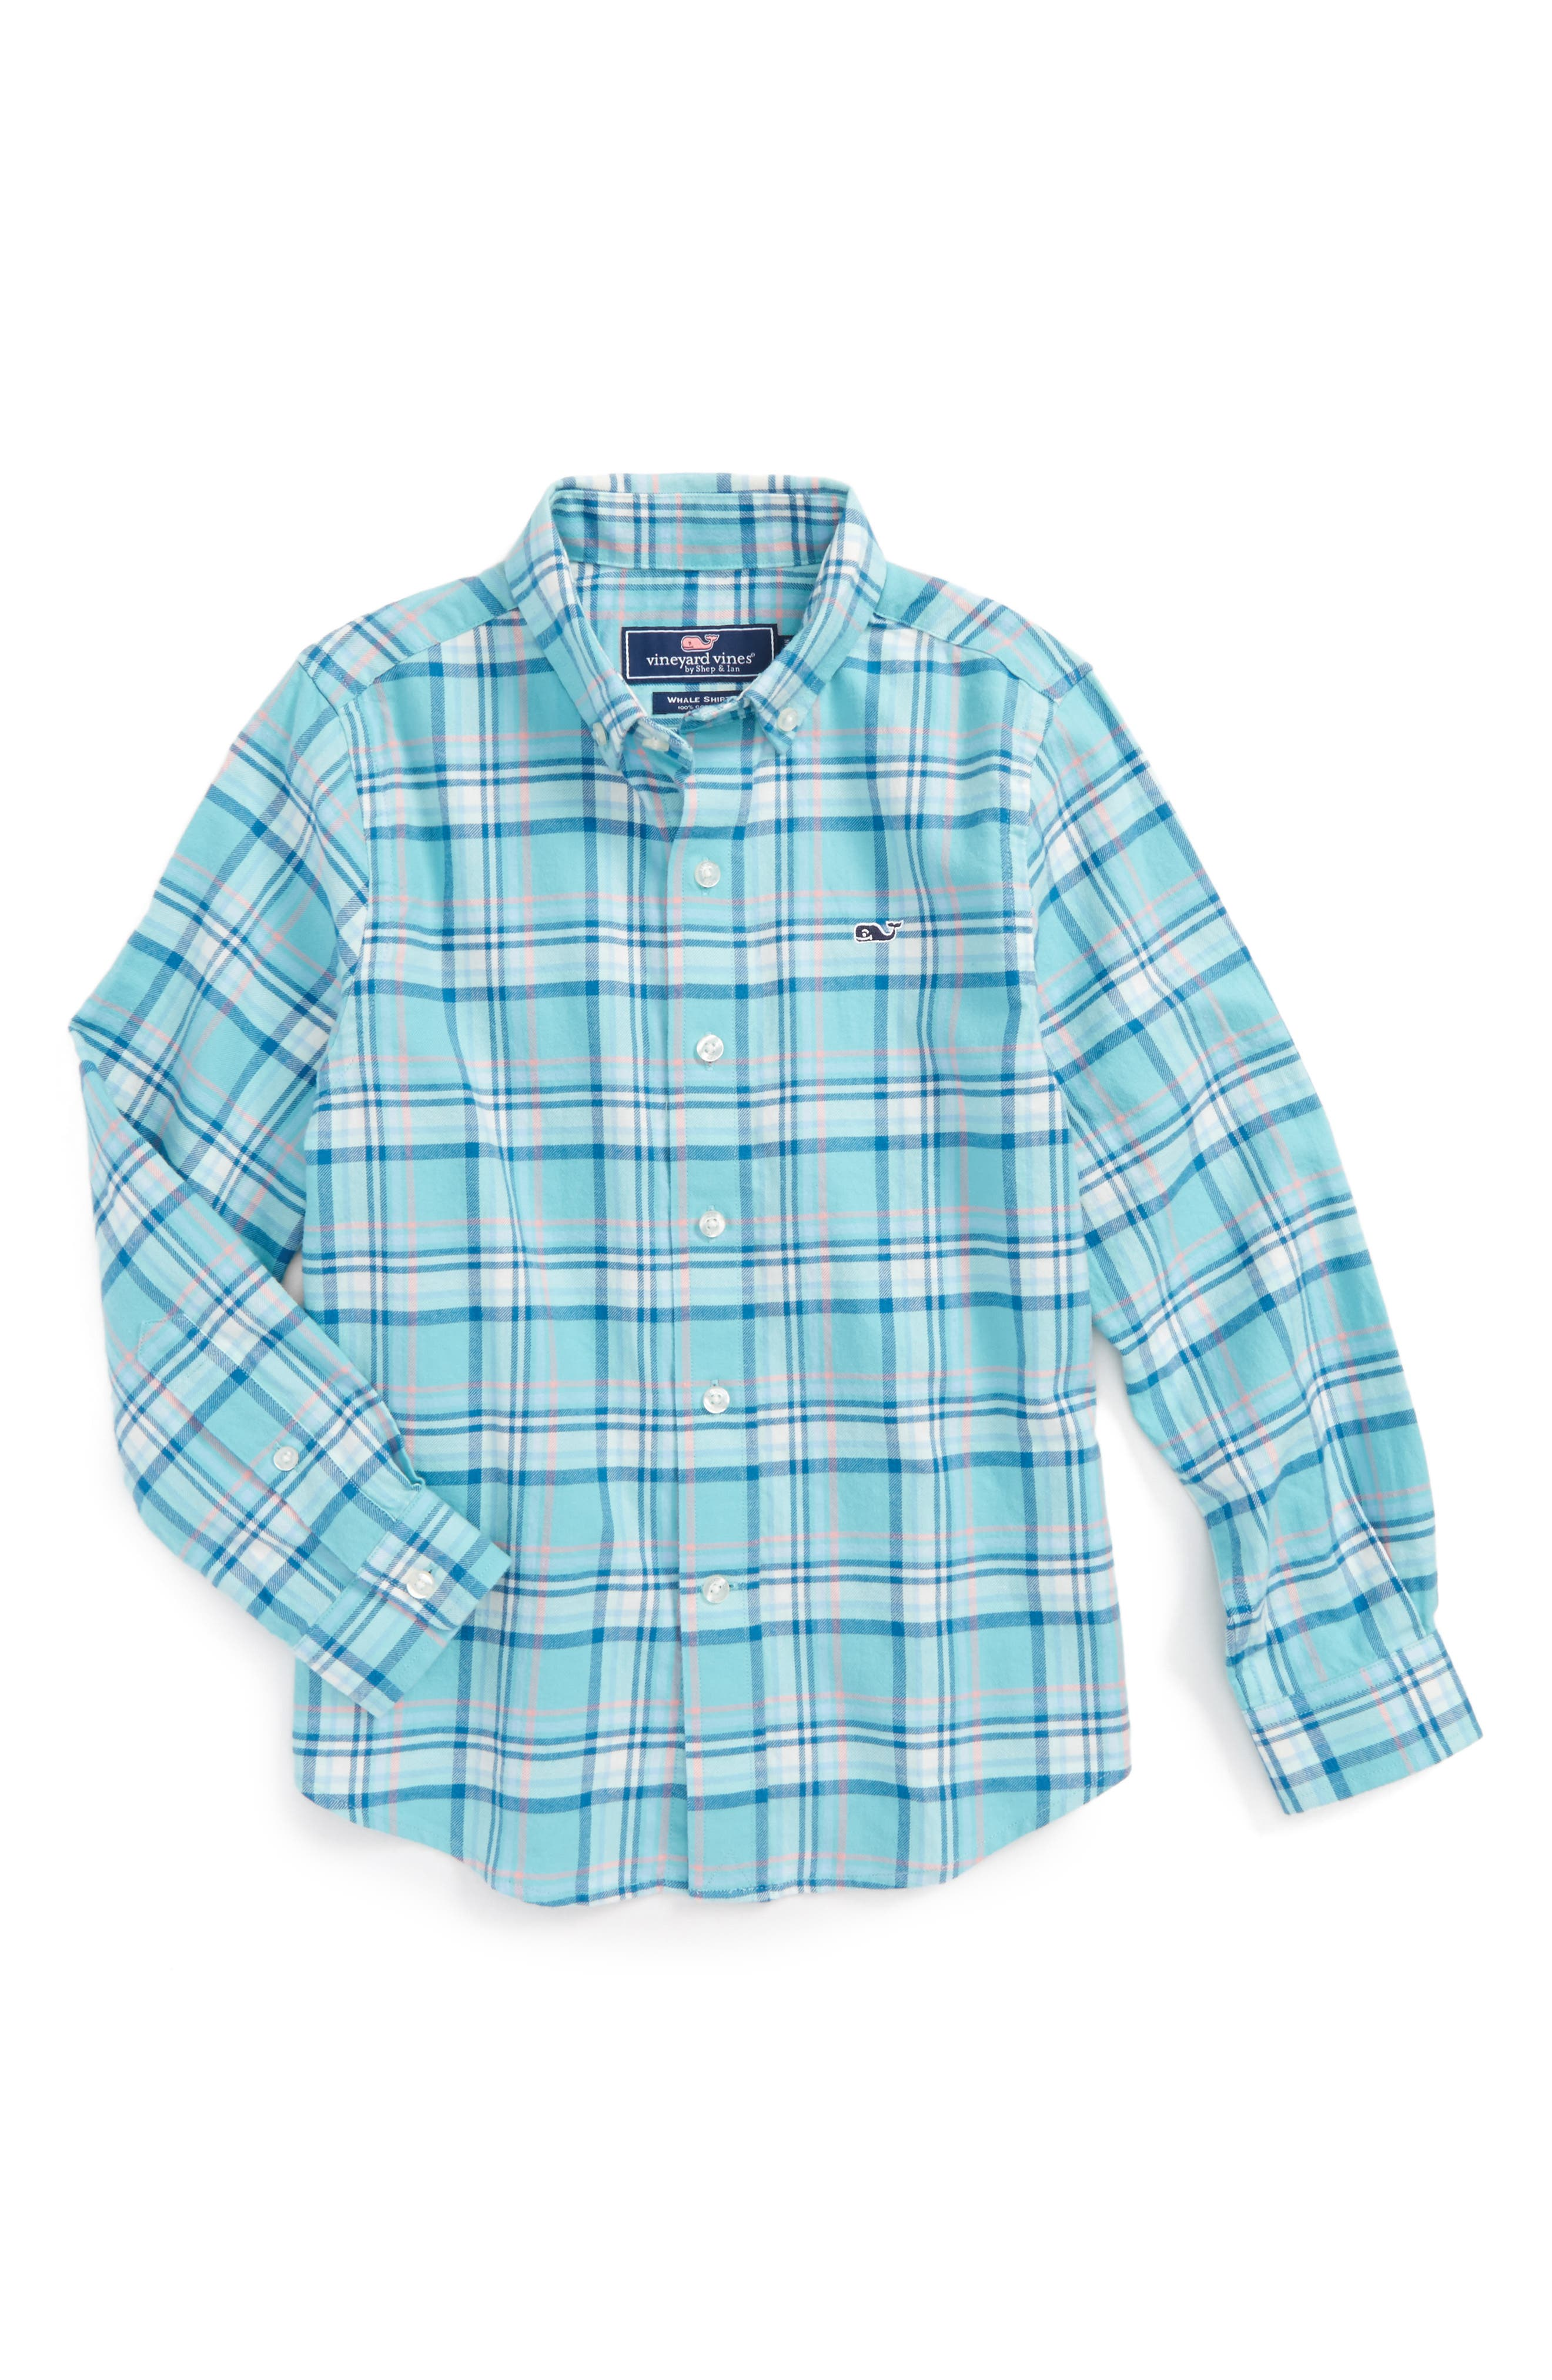 Loblolly Plaid Shirt,                             Main thumbnail 1, color,                             442